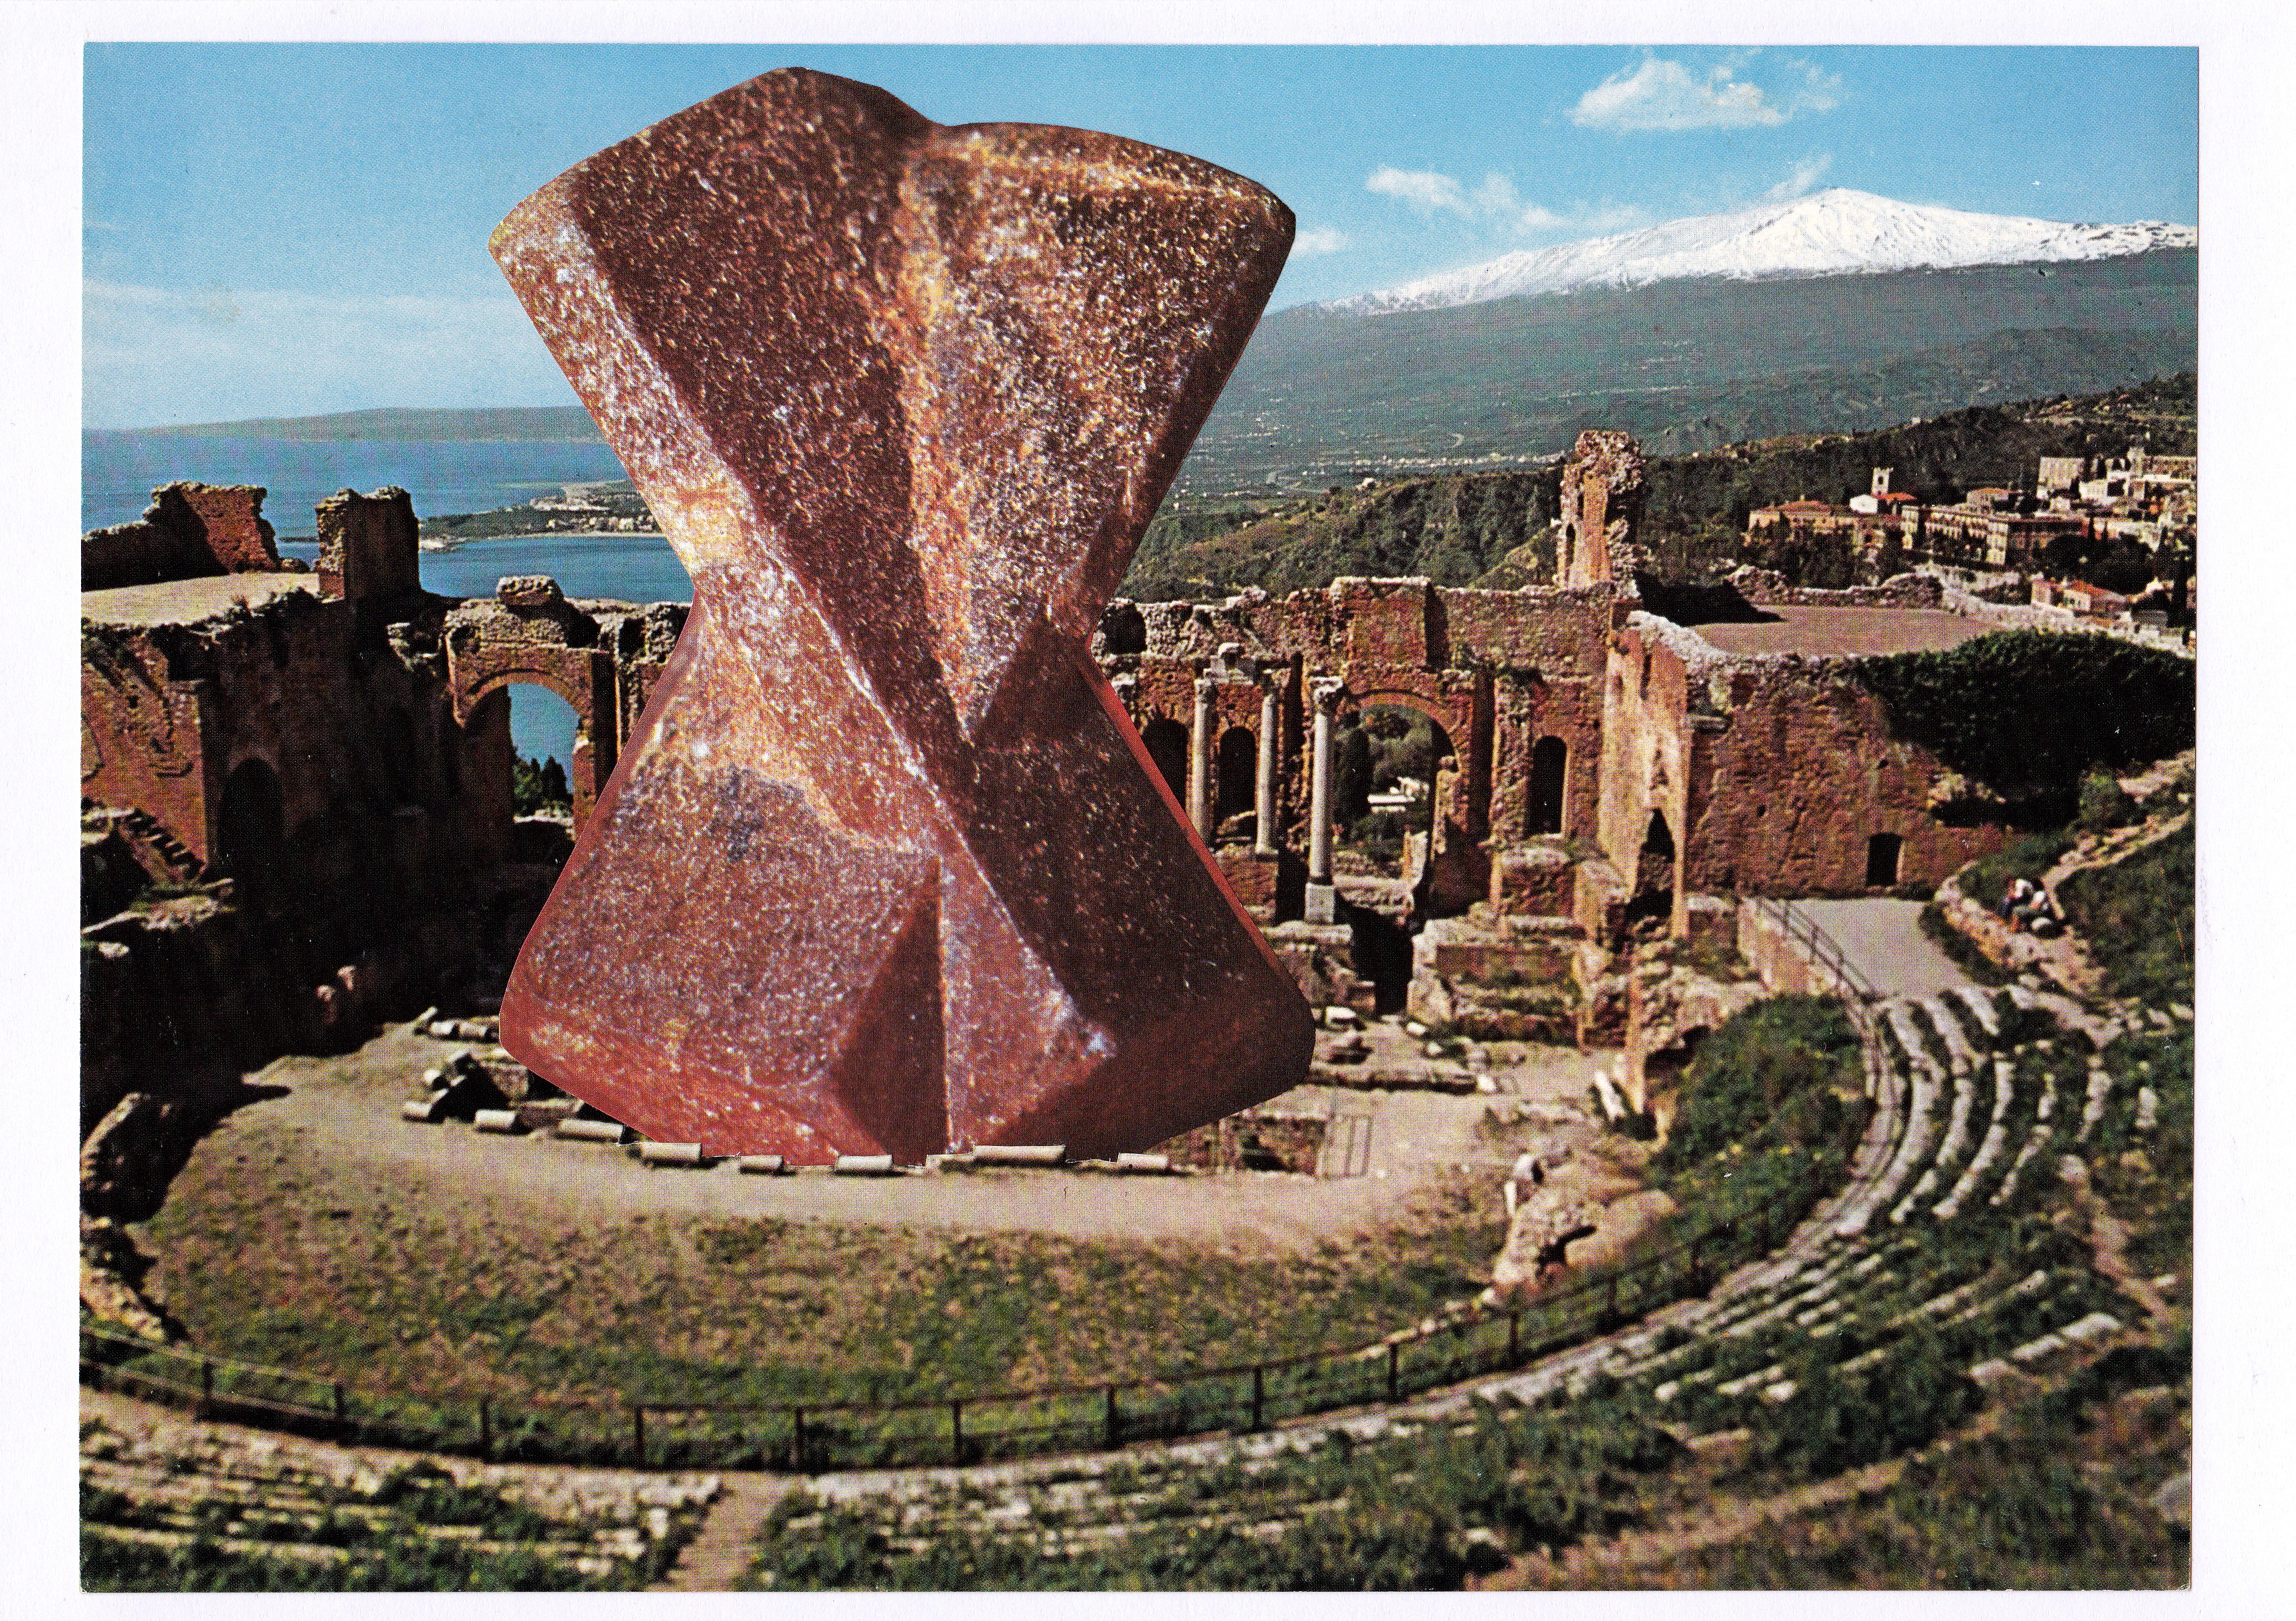 Publicly-Funded Minerals At The Greek Theatre Of Taormina